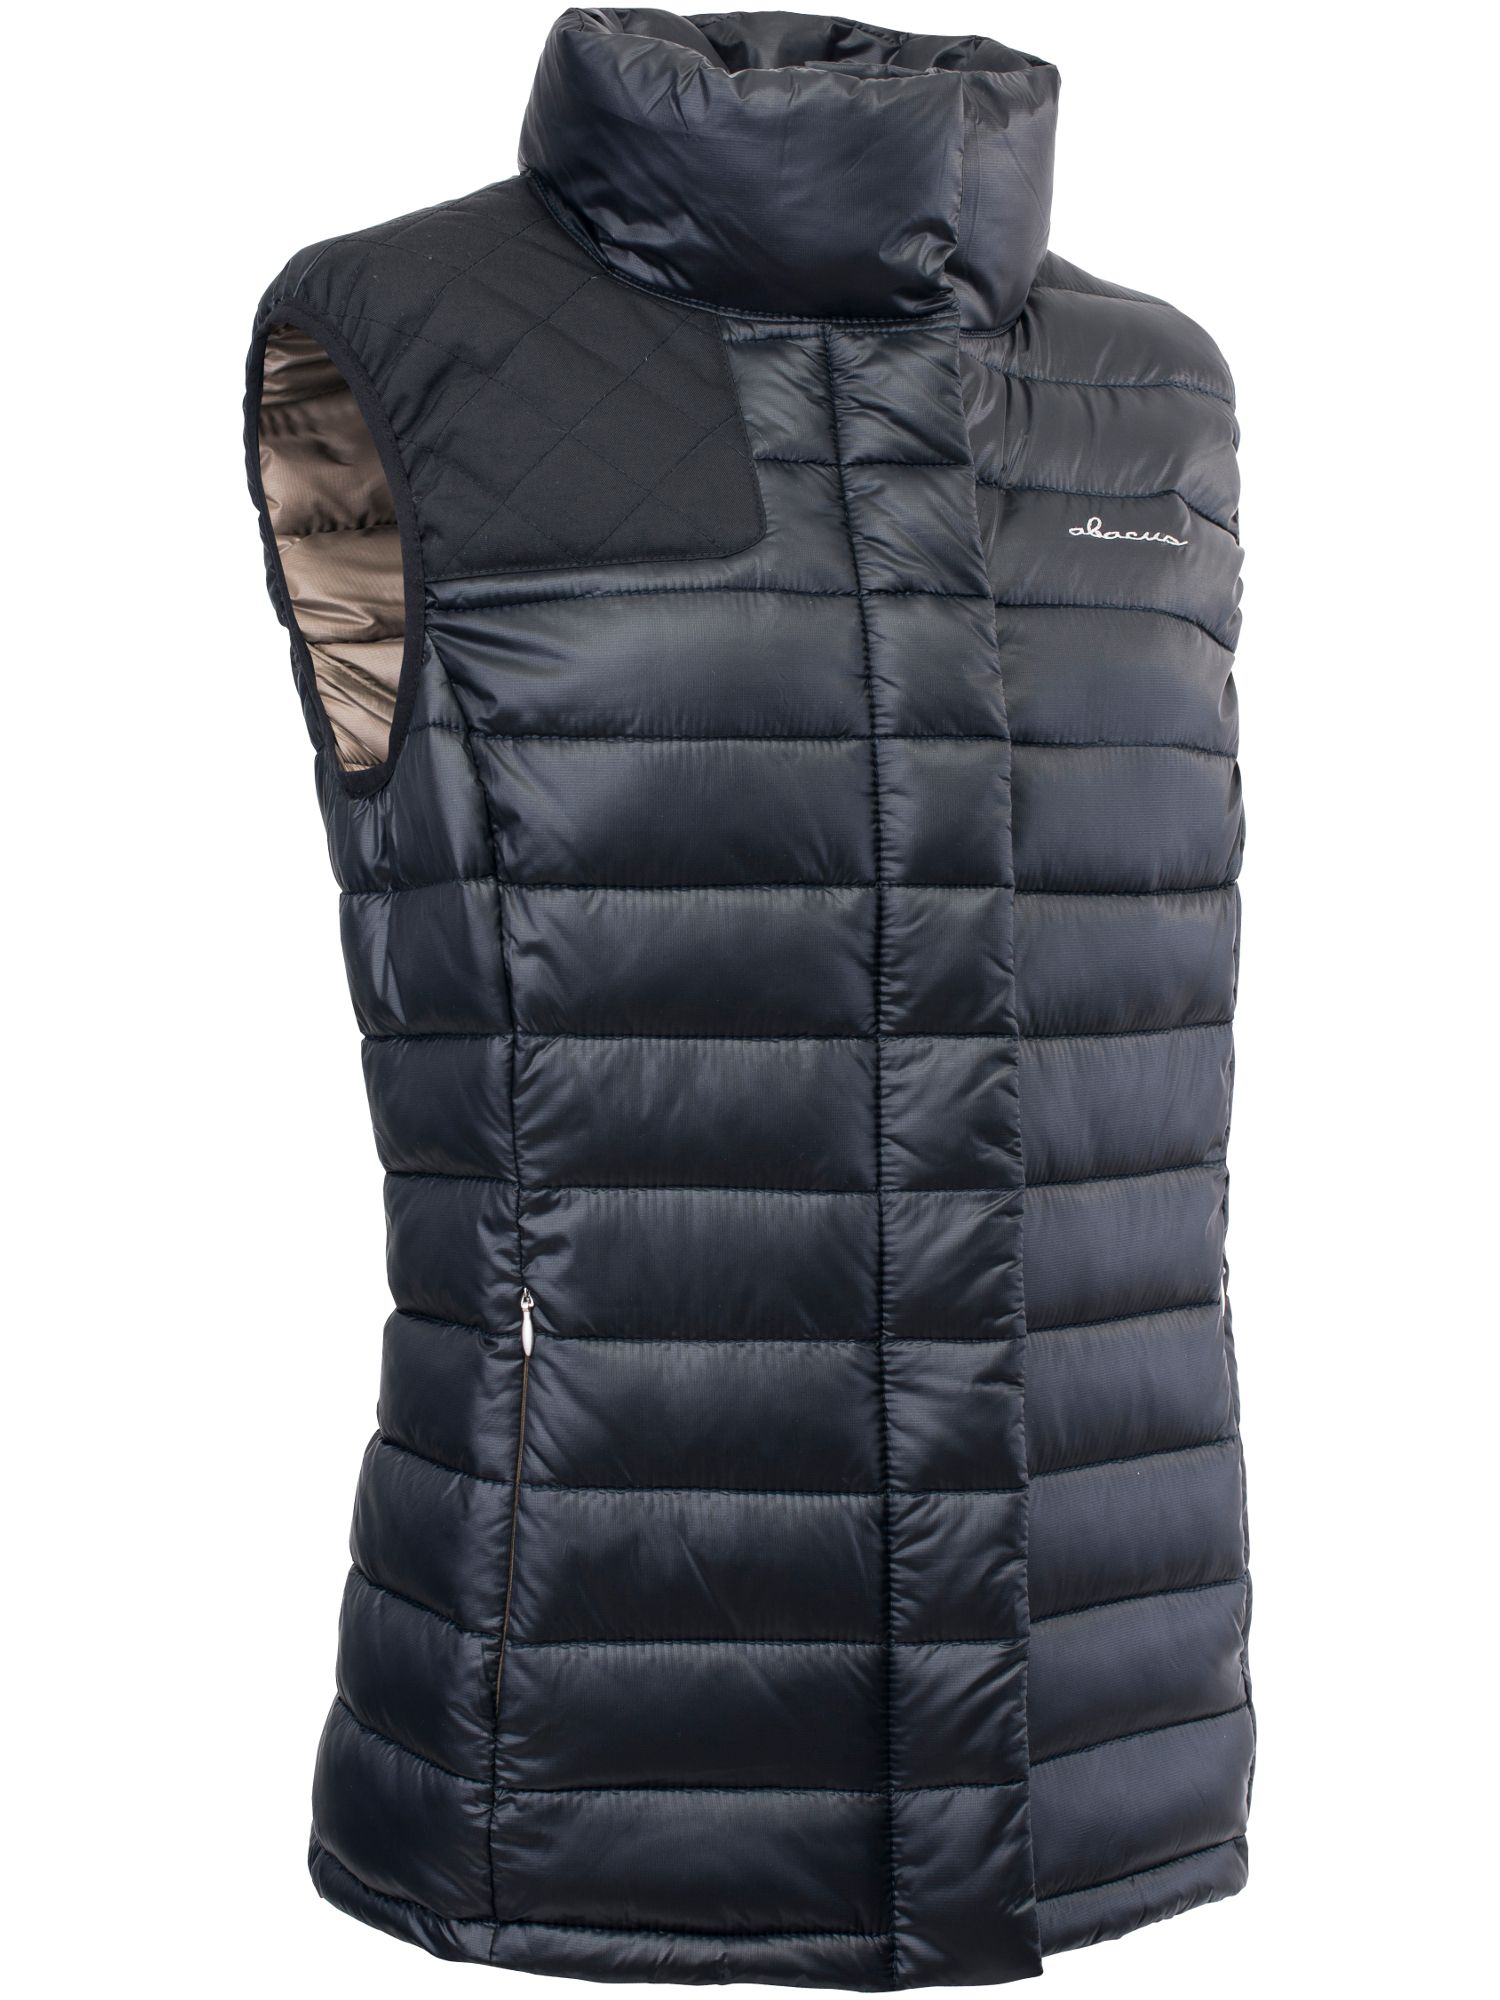 Abacus Cornwall Downlook Gilet, Black